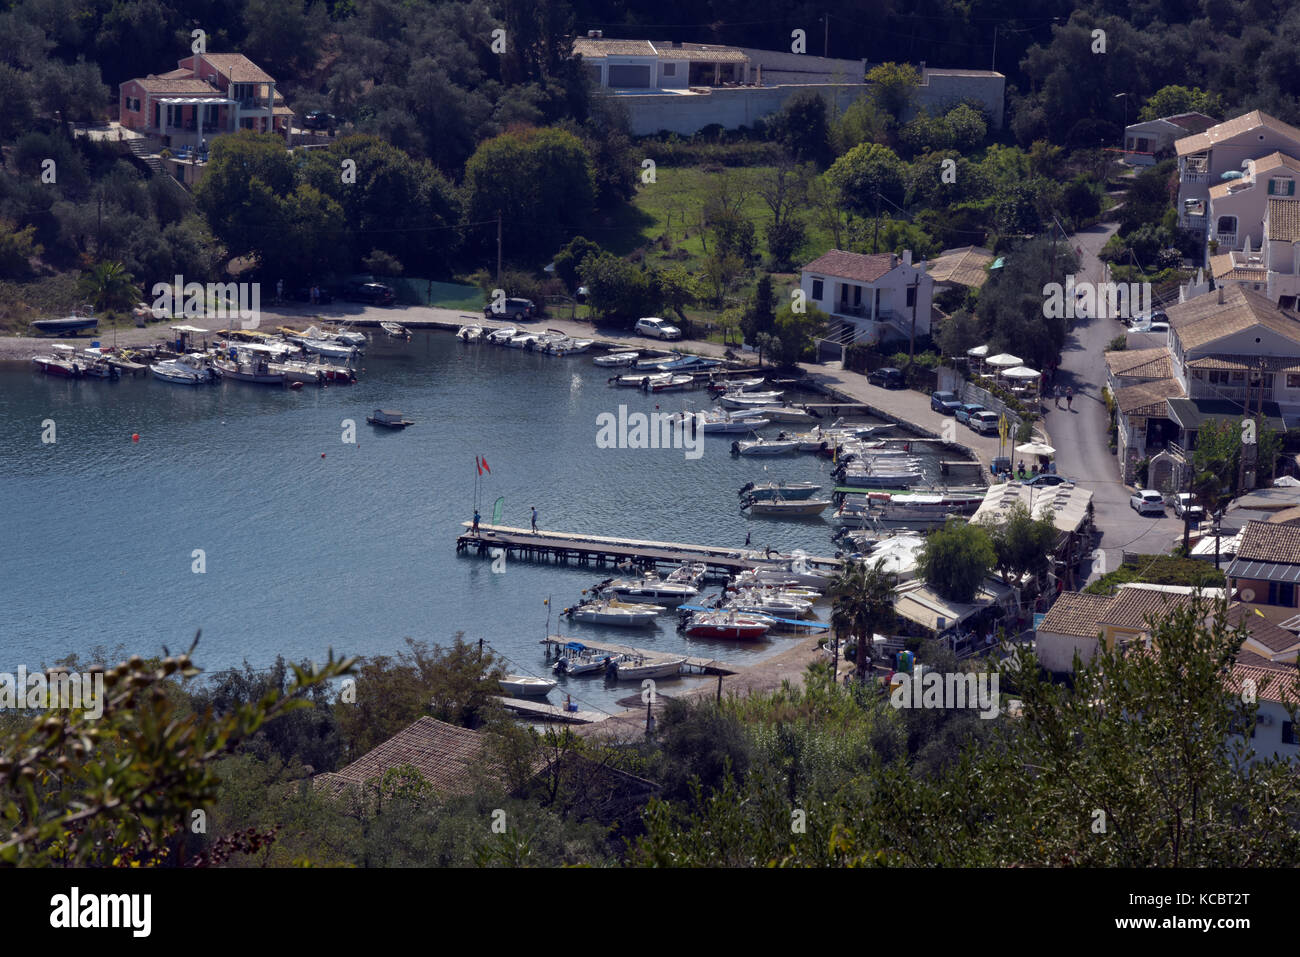 The beautiful, picturesque and scenic harbour and bay at Saint Stefanos near kassiopi on the greek island of Corfu Stock Photo